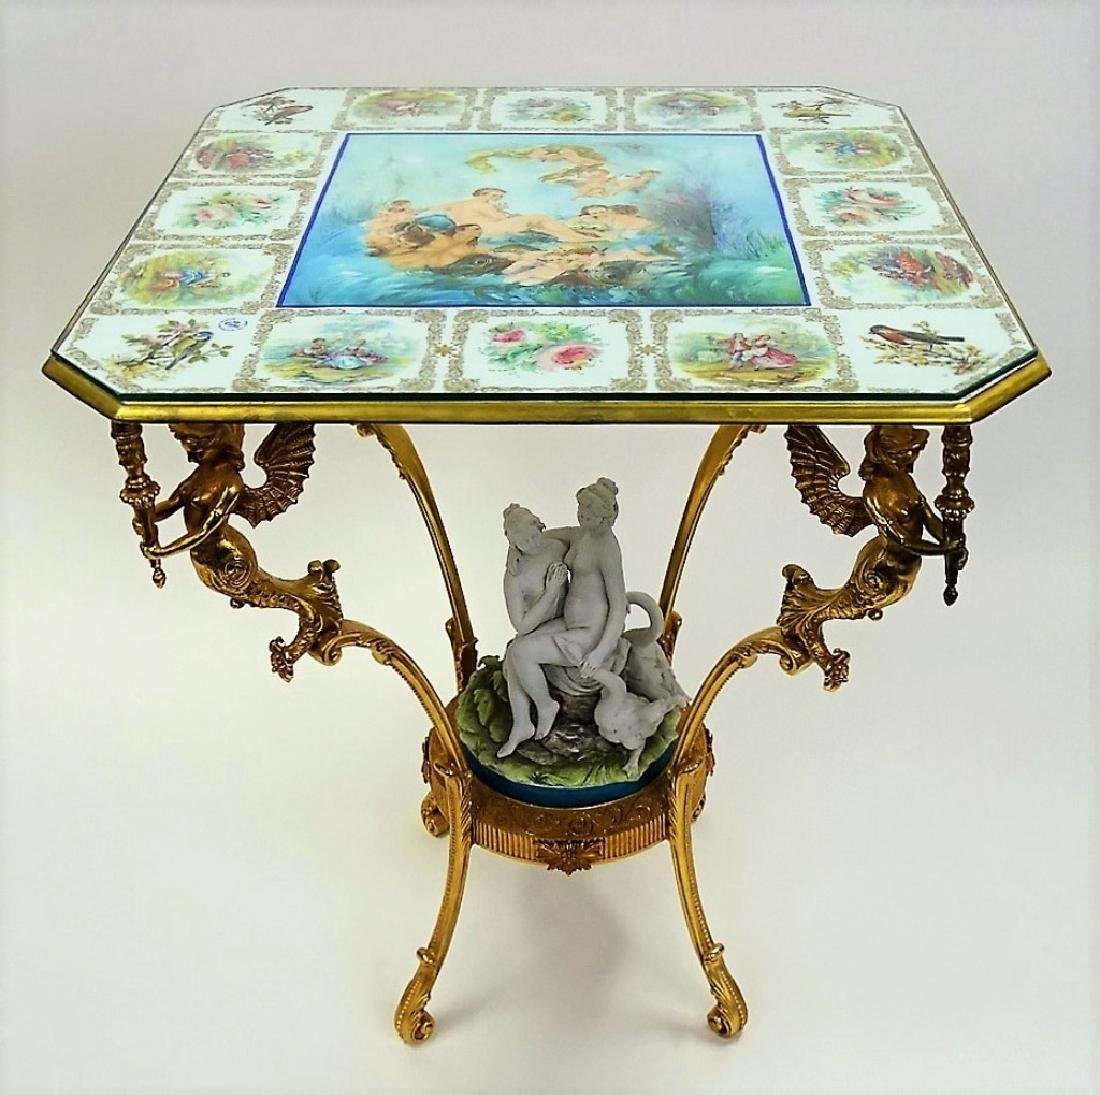 FABULOUS HAND PAINTED PORCELAIN AND BRONZE TABLE